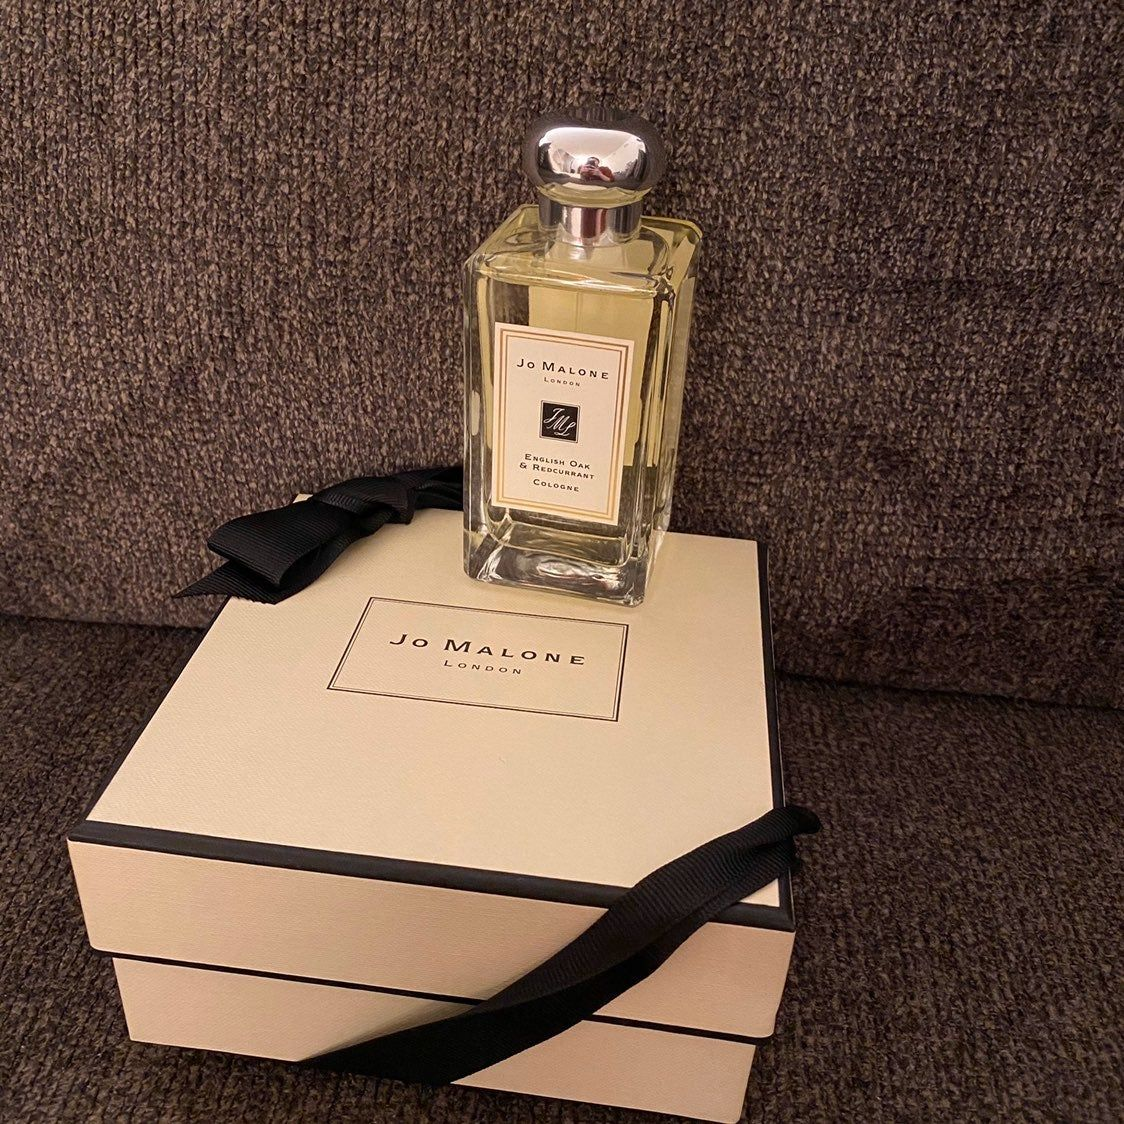 Brand New With Gift Box And Ribbon Free Shipping Perfect Holiday Gift Perfect Holiday Gifts Holiday Gifts Jo Malone Woman